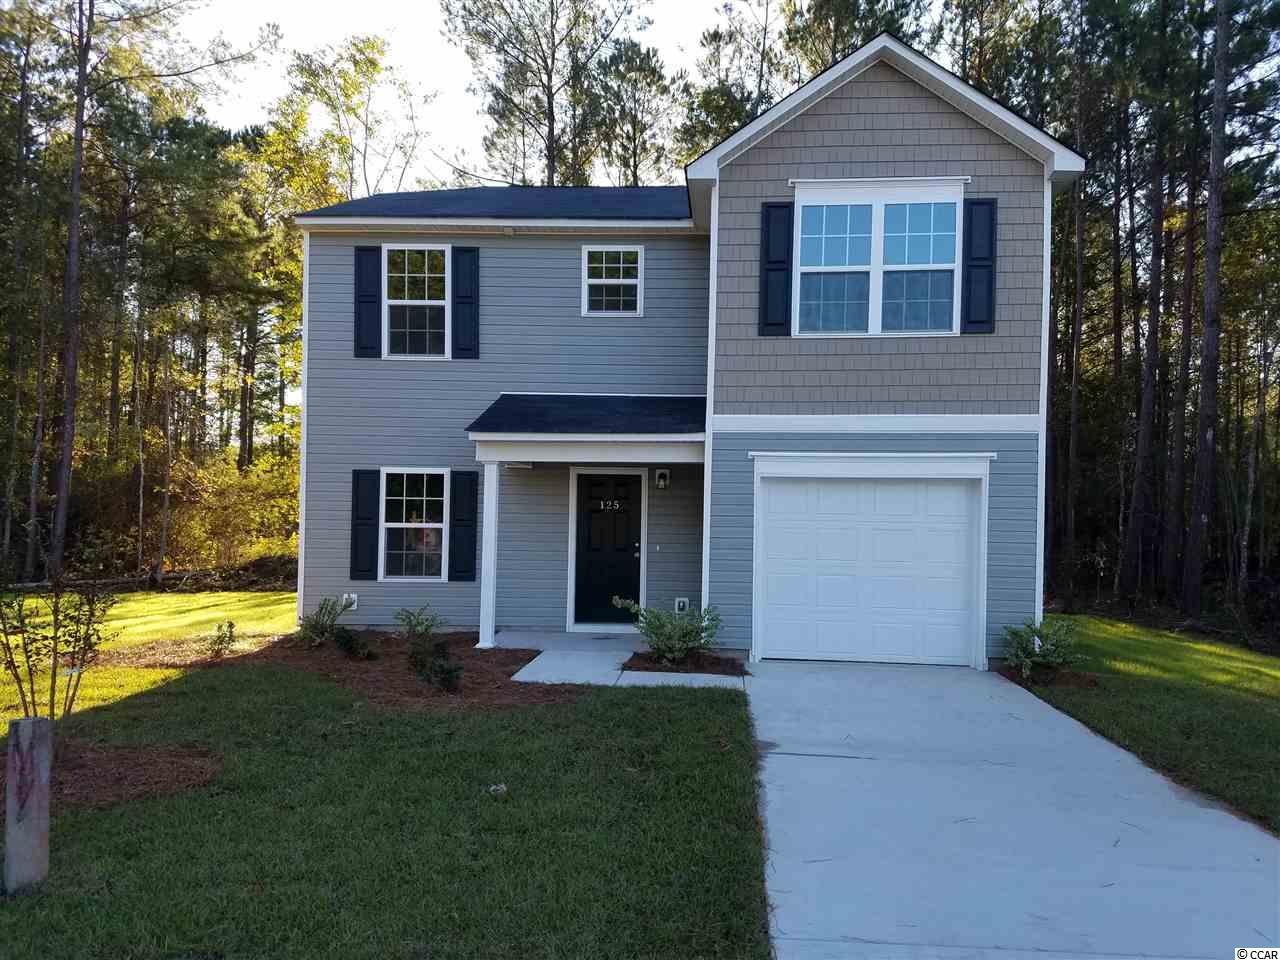 125 Winding Path, Loris, SC 29569